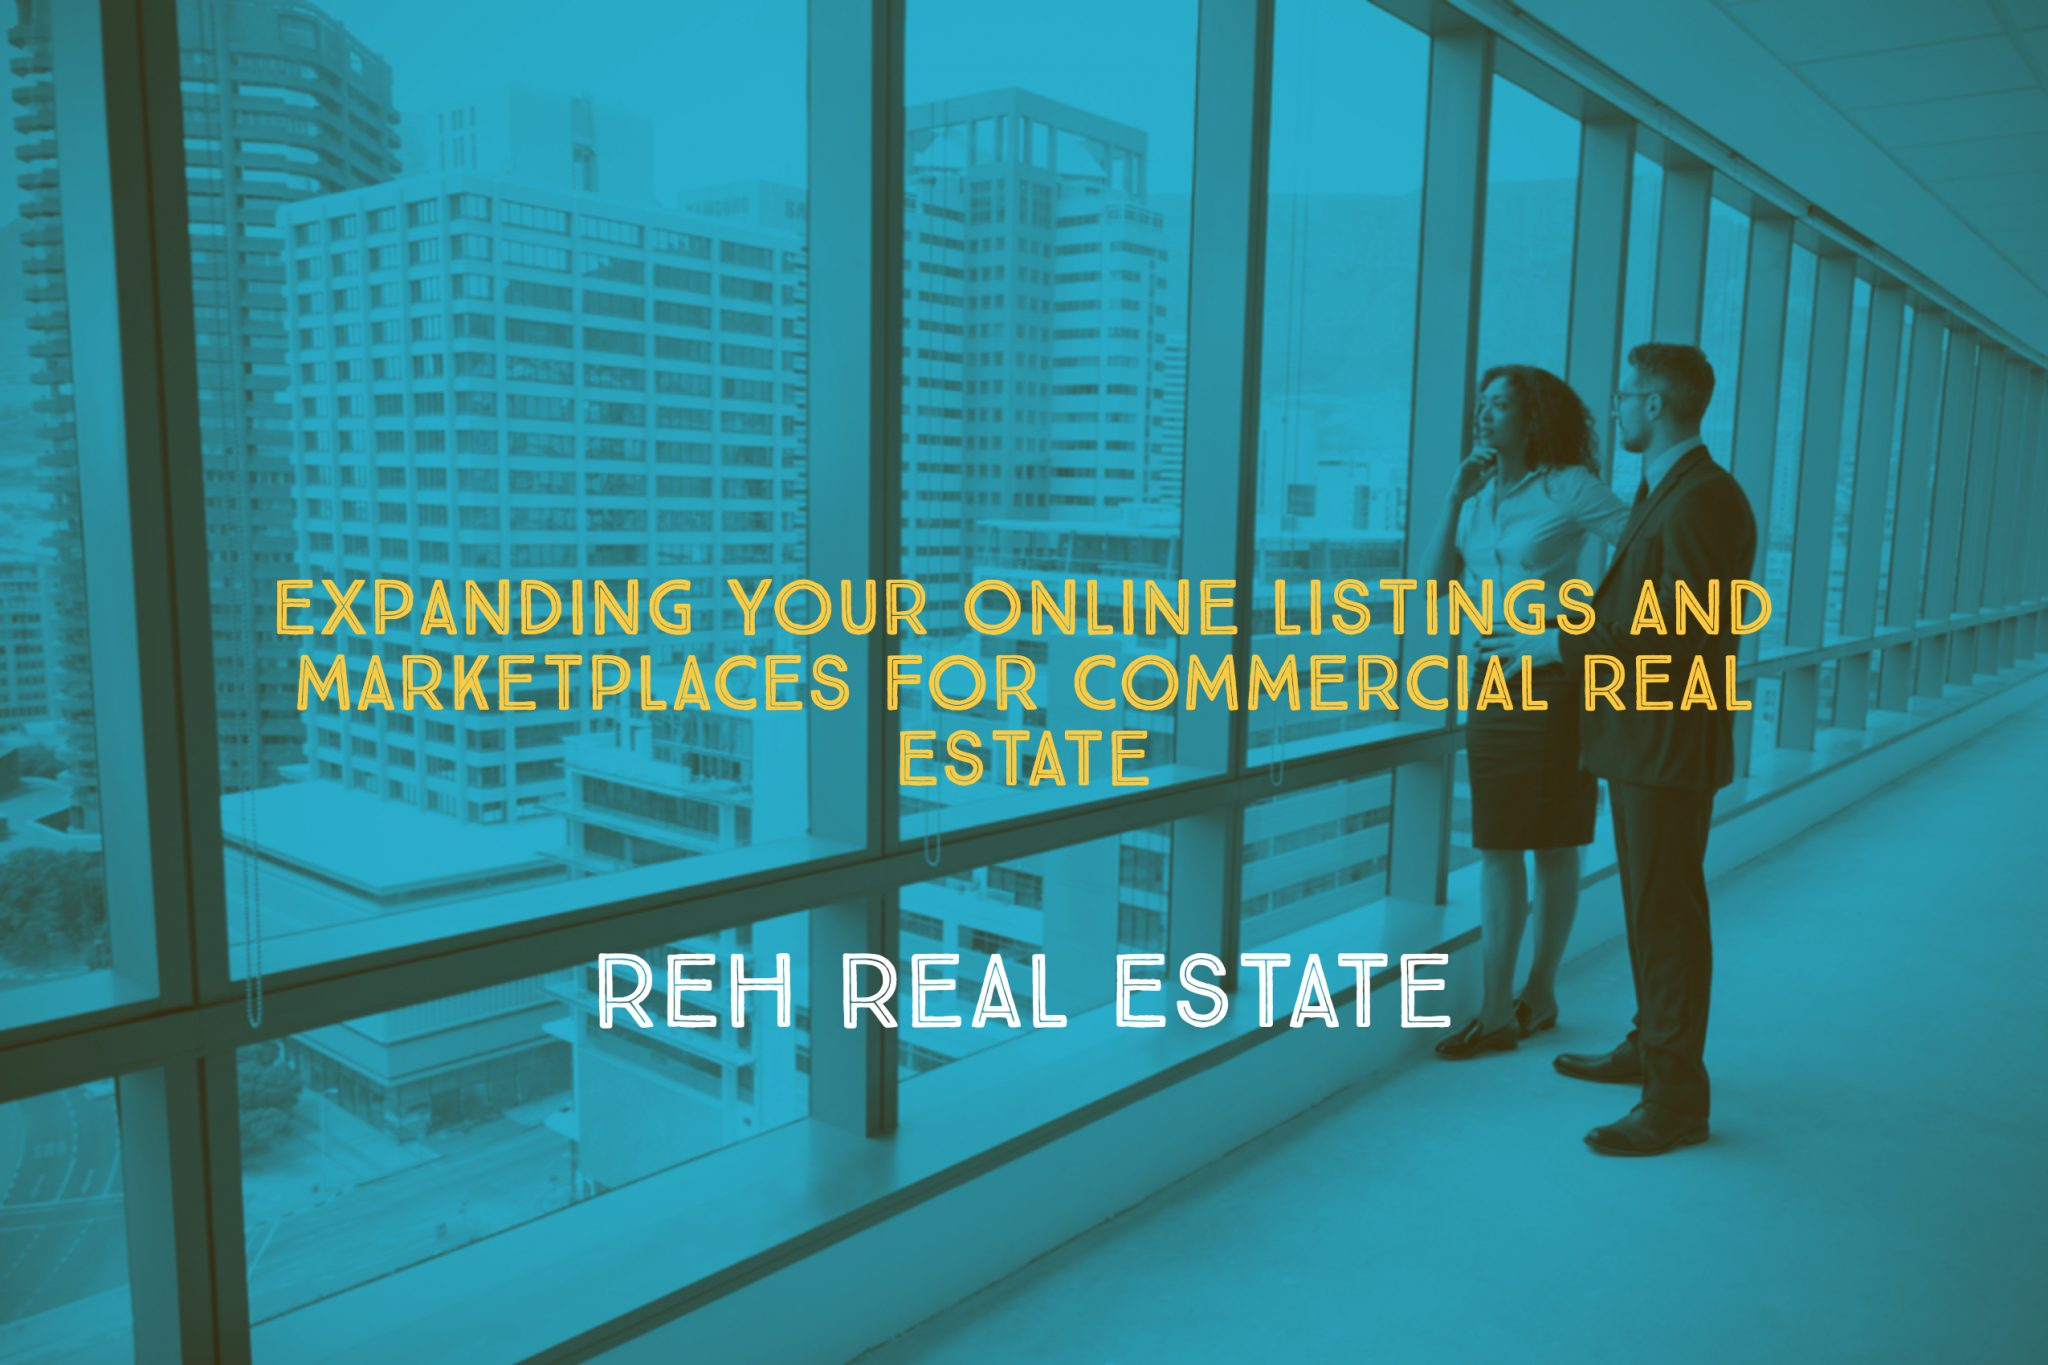 Expanding Into Commerical Real Estate | REH Real Estate